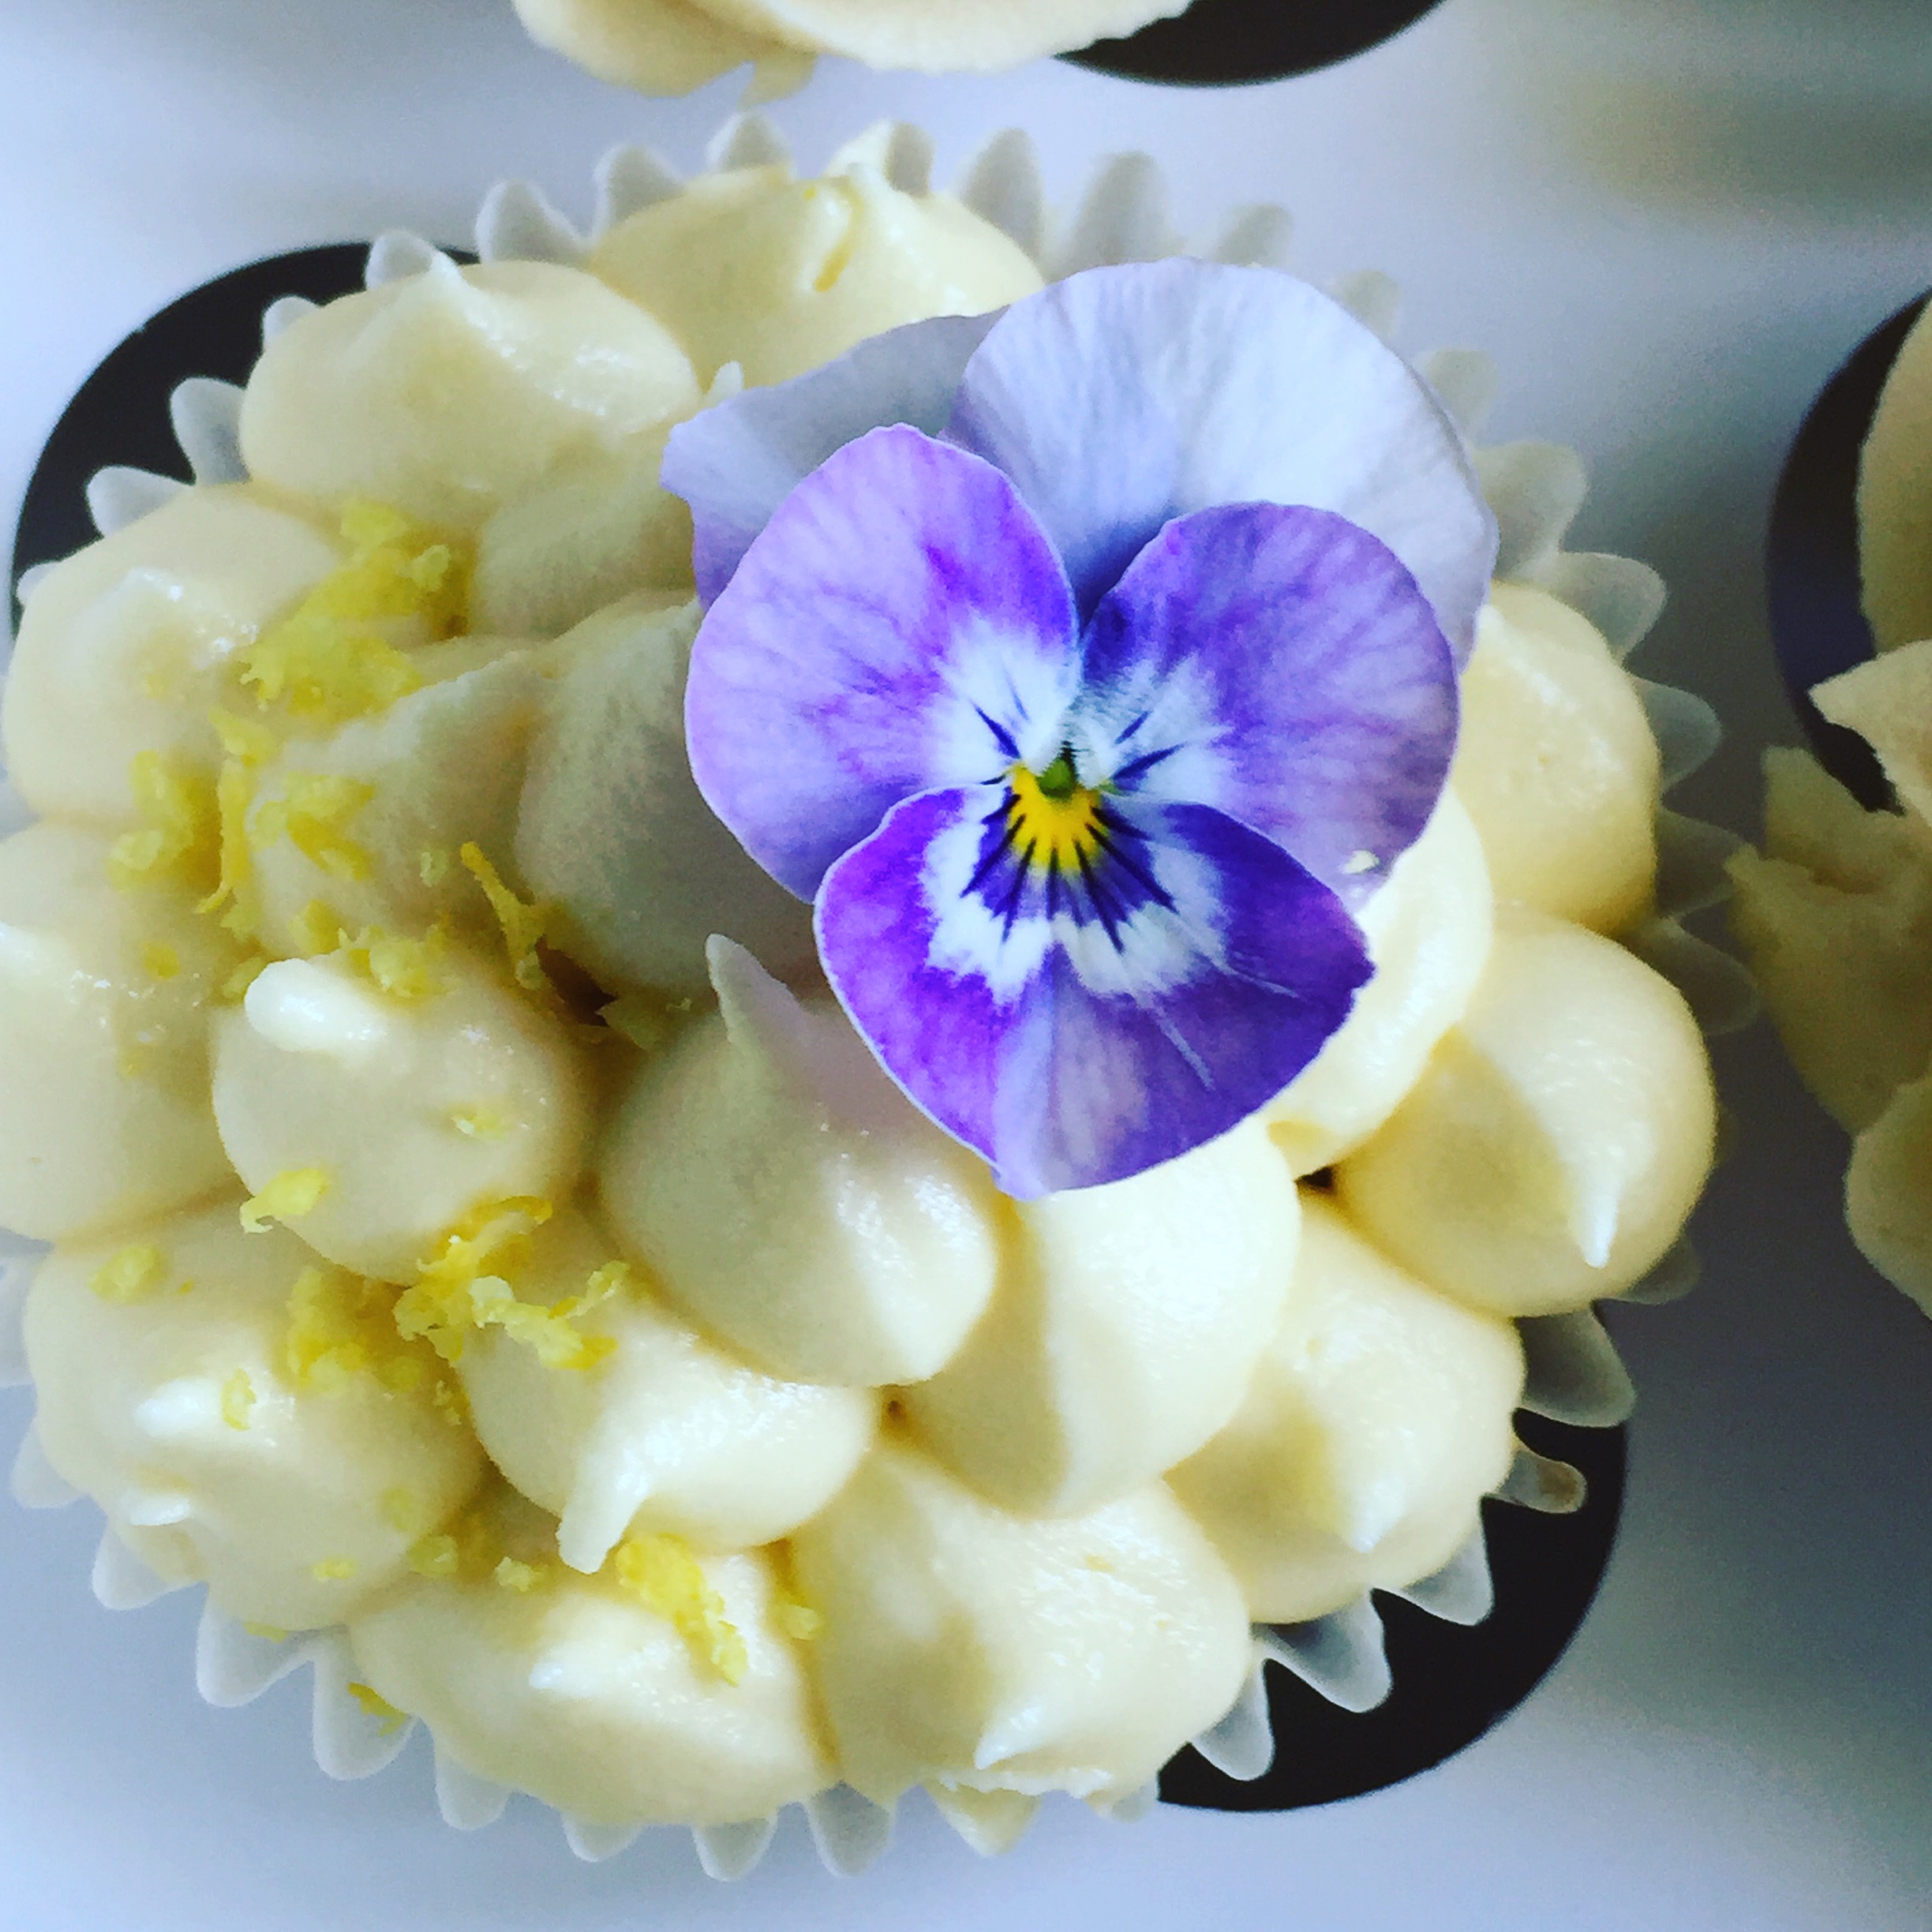 Lemon cupcake with viola